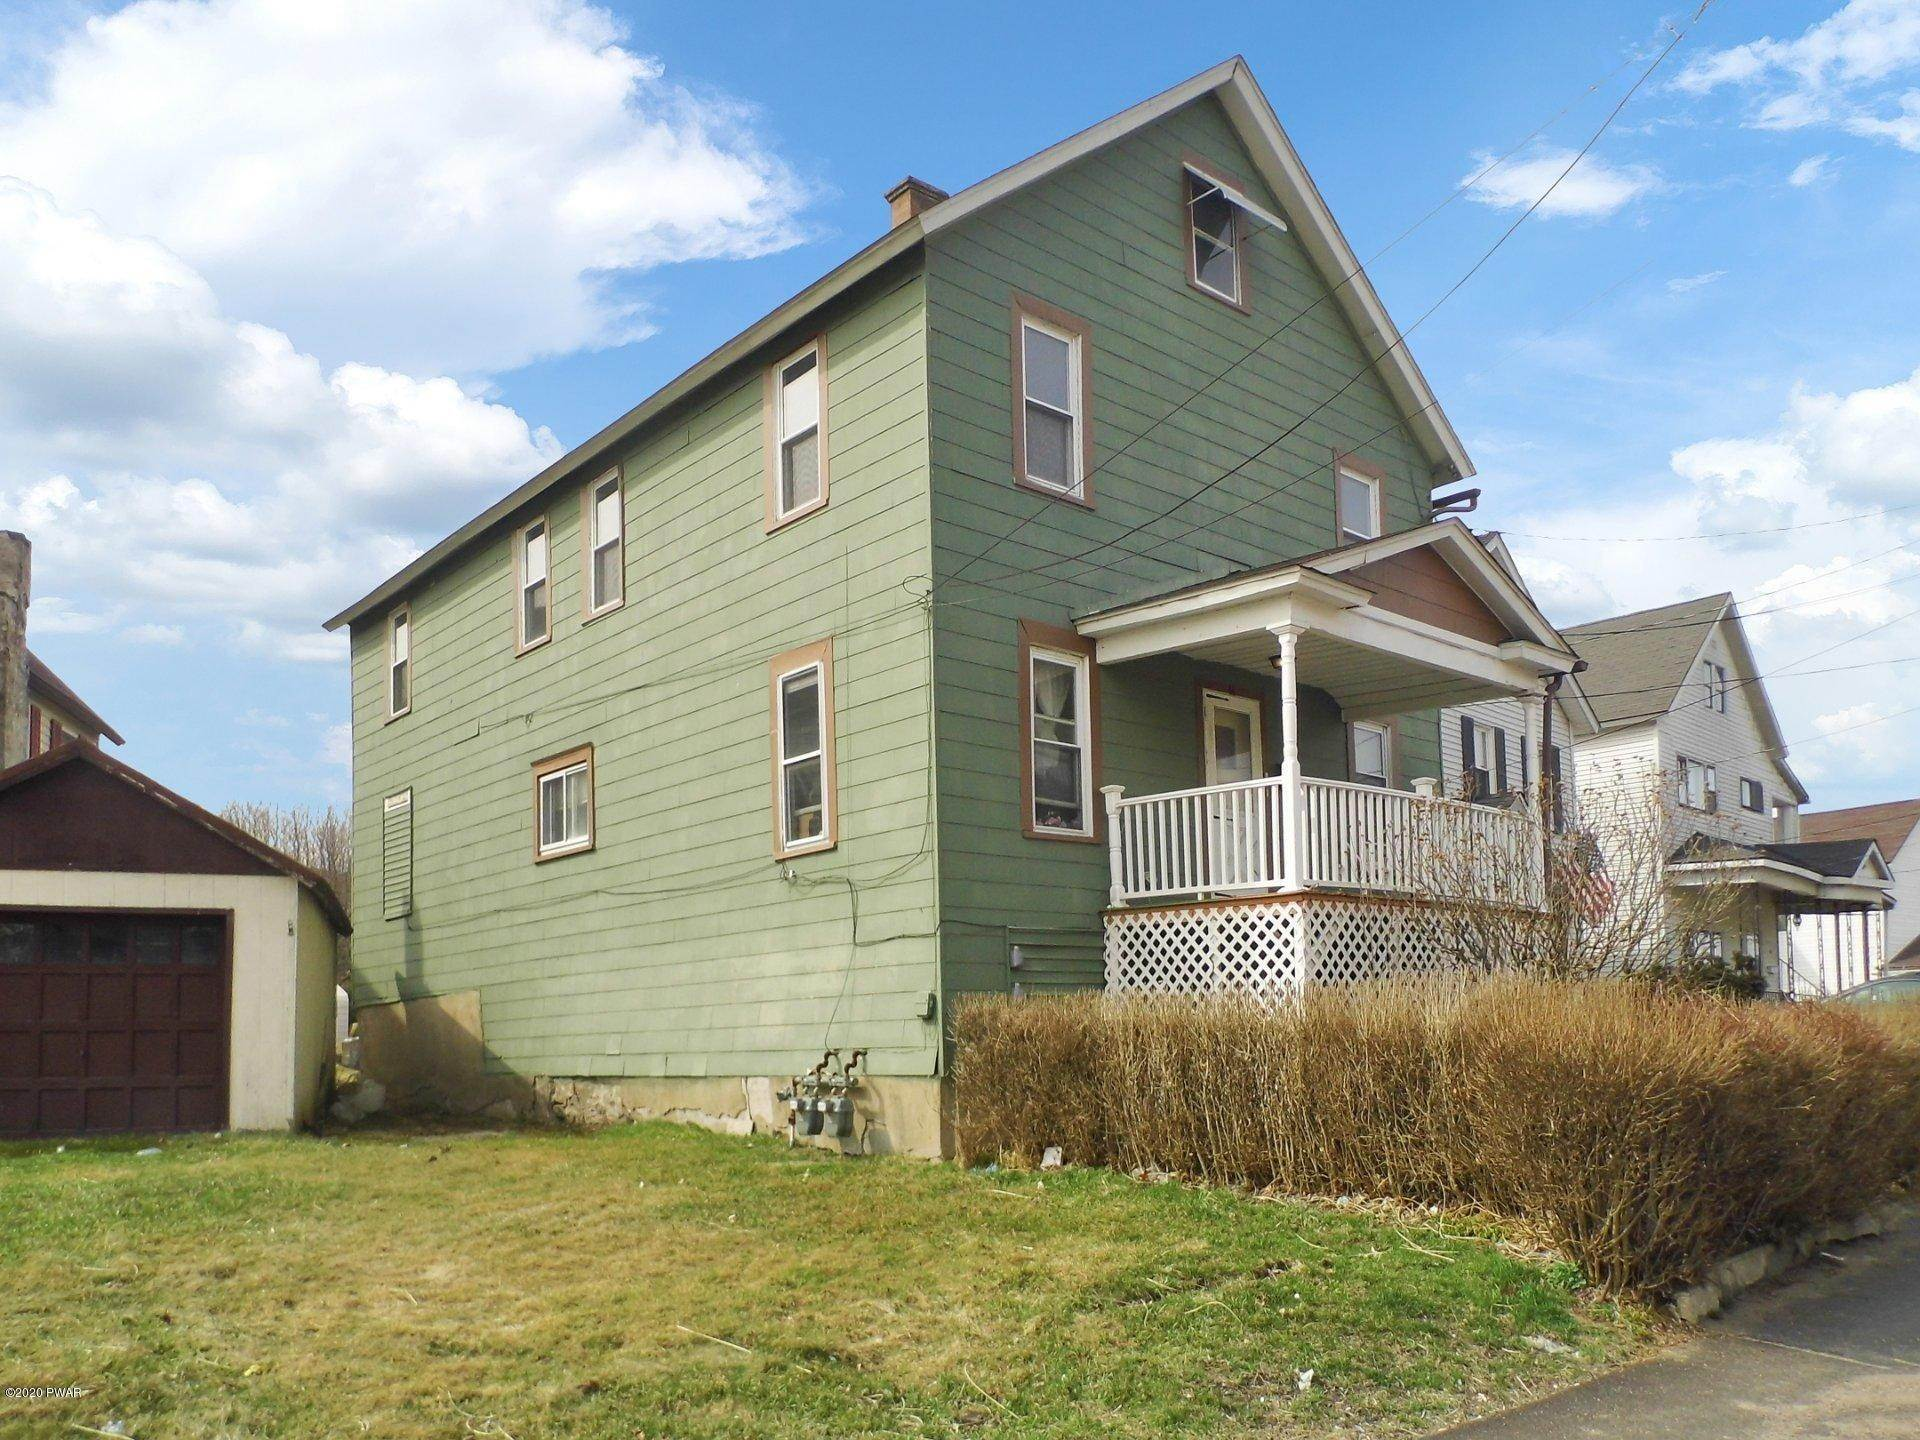 Multi-Family Homes for Sale at 16 Hospital St Carbondale, Pennsylvania 18407 United States